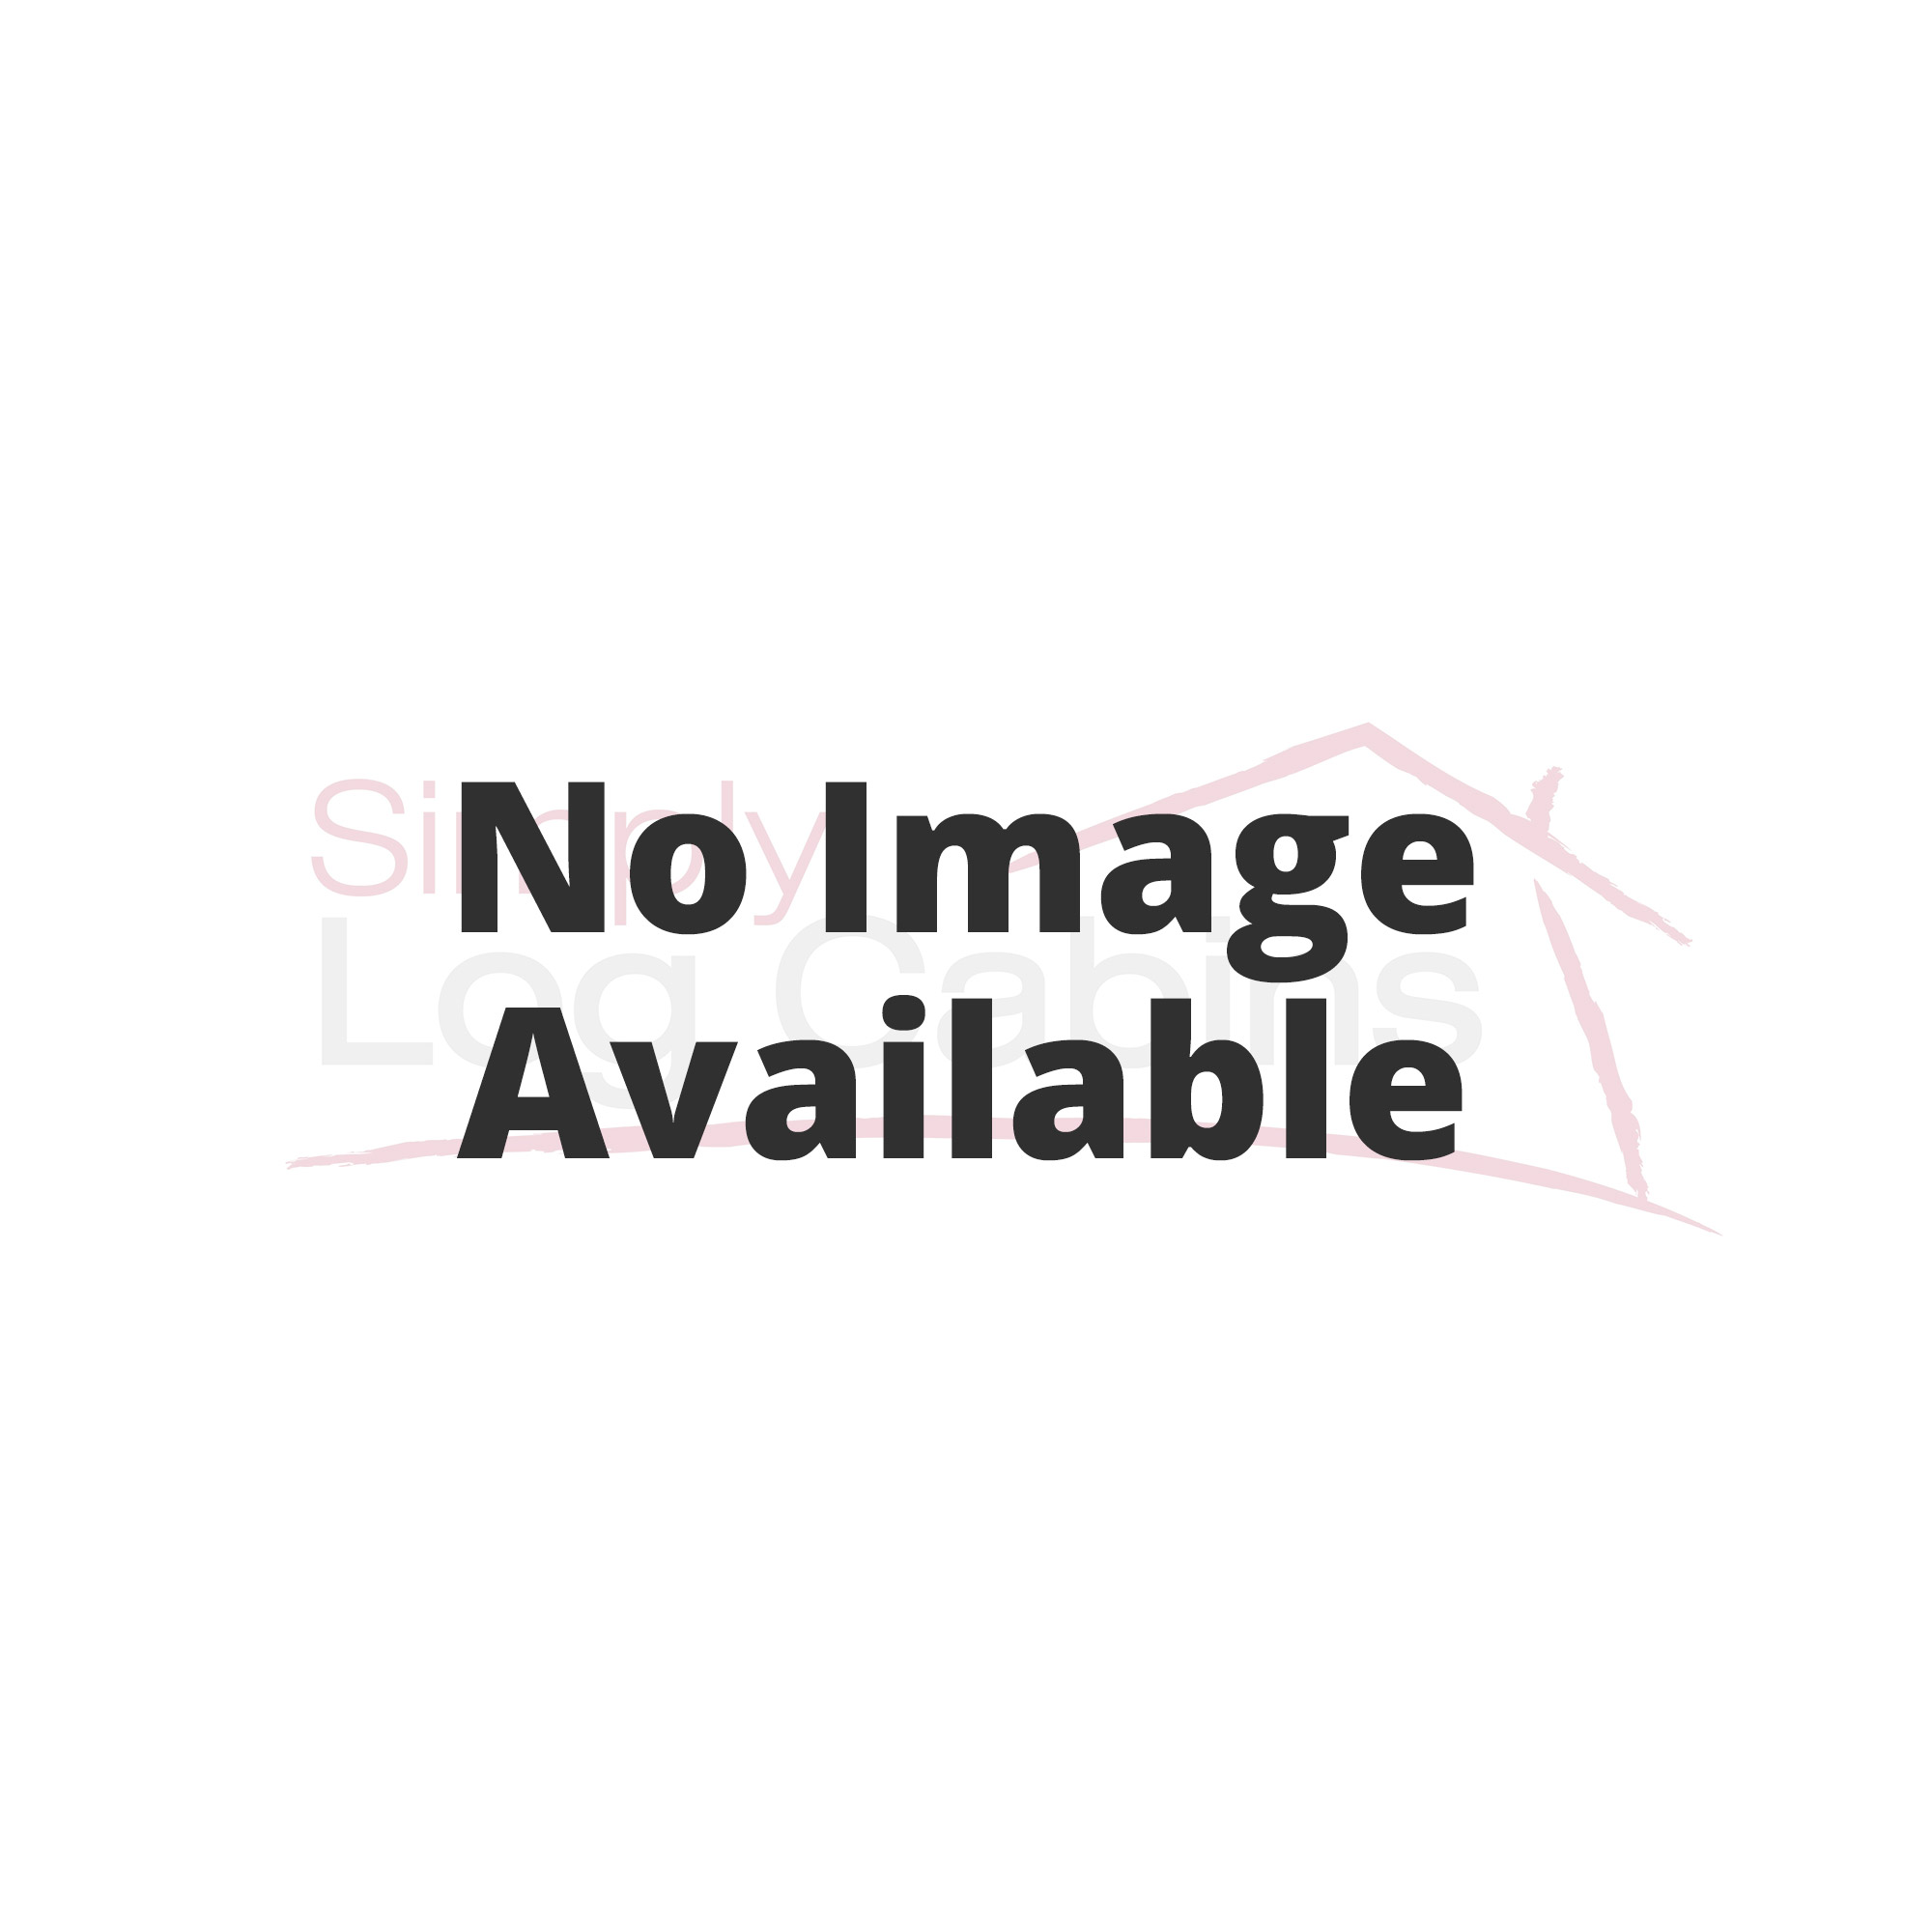 House Plans With Rv Garage as well Building a Slant Roof Shed moreover Shed Plans 20 X 30 Elk as well Ranch Home Building Plans moreover 3 Car Carport Building Plans. on metal carport with storage room